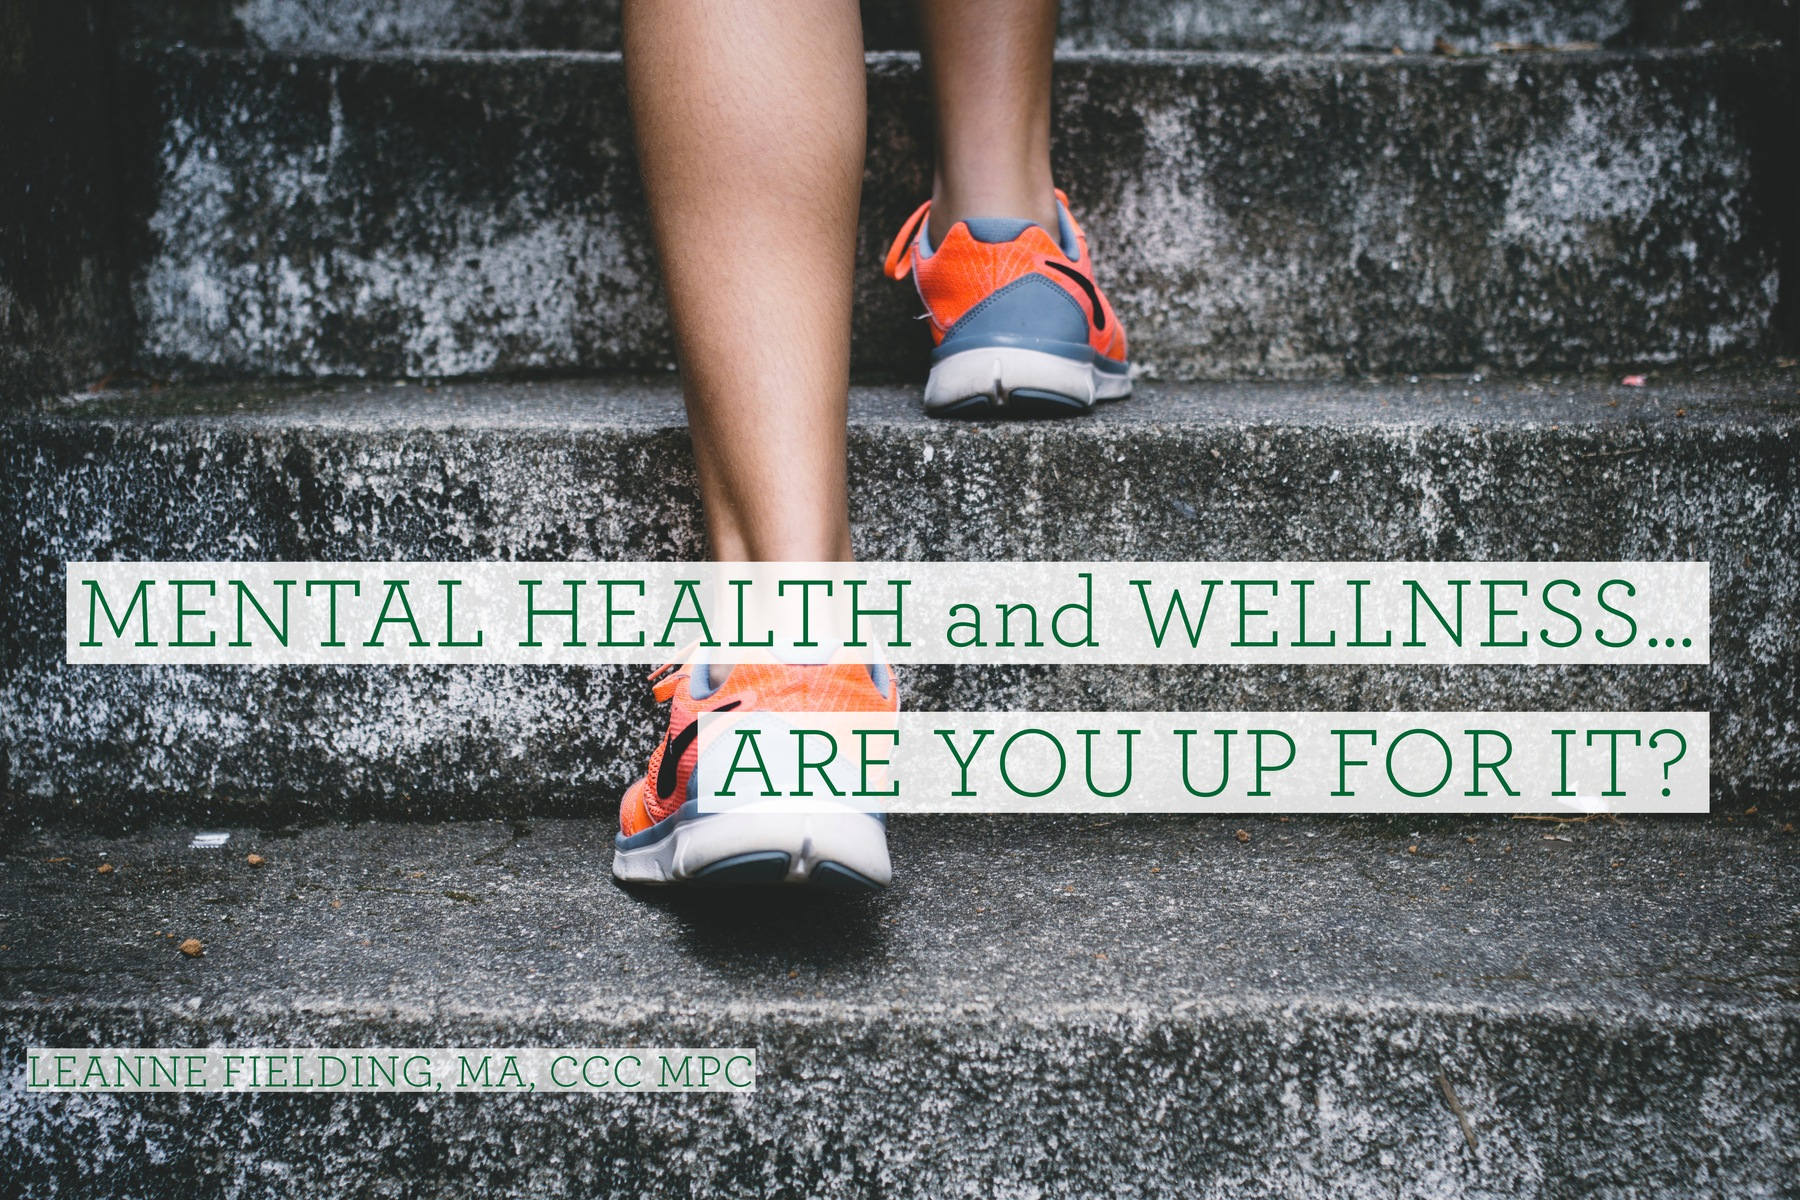 Mental Health And Wellness...